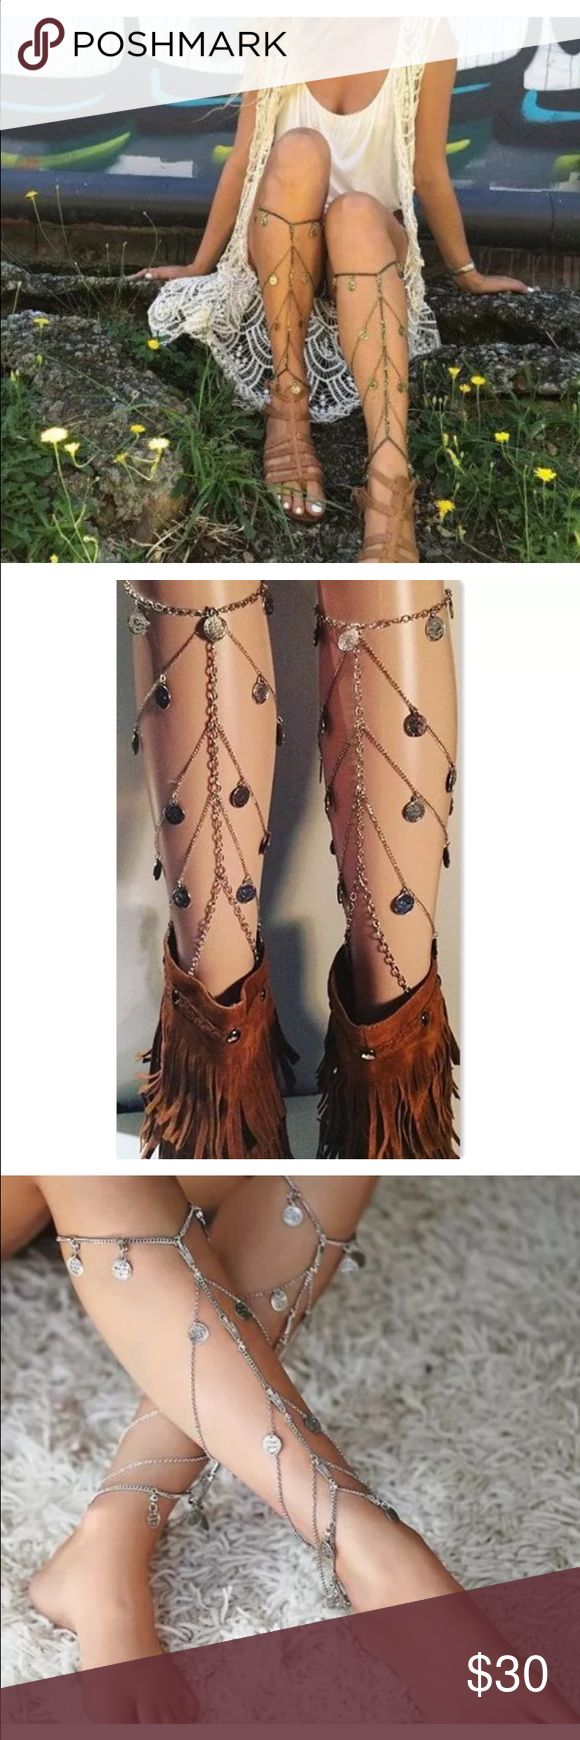 Leg Chain Set 2016 Summer festival boho chic tumblr style! Leg chain Host pick seller! Always the highest quality  Please note due to high volume of ordering it can take up to 12 business days to process order Jewelry